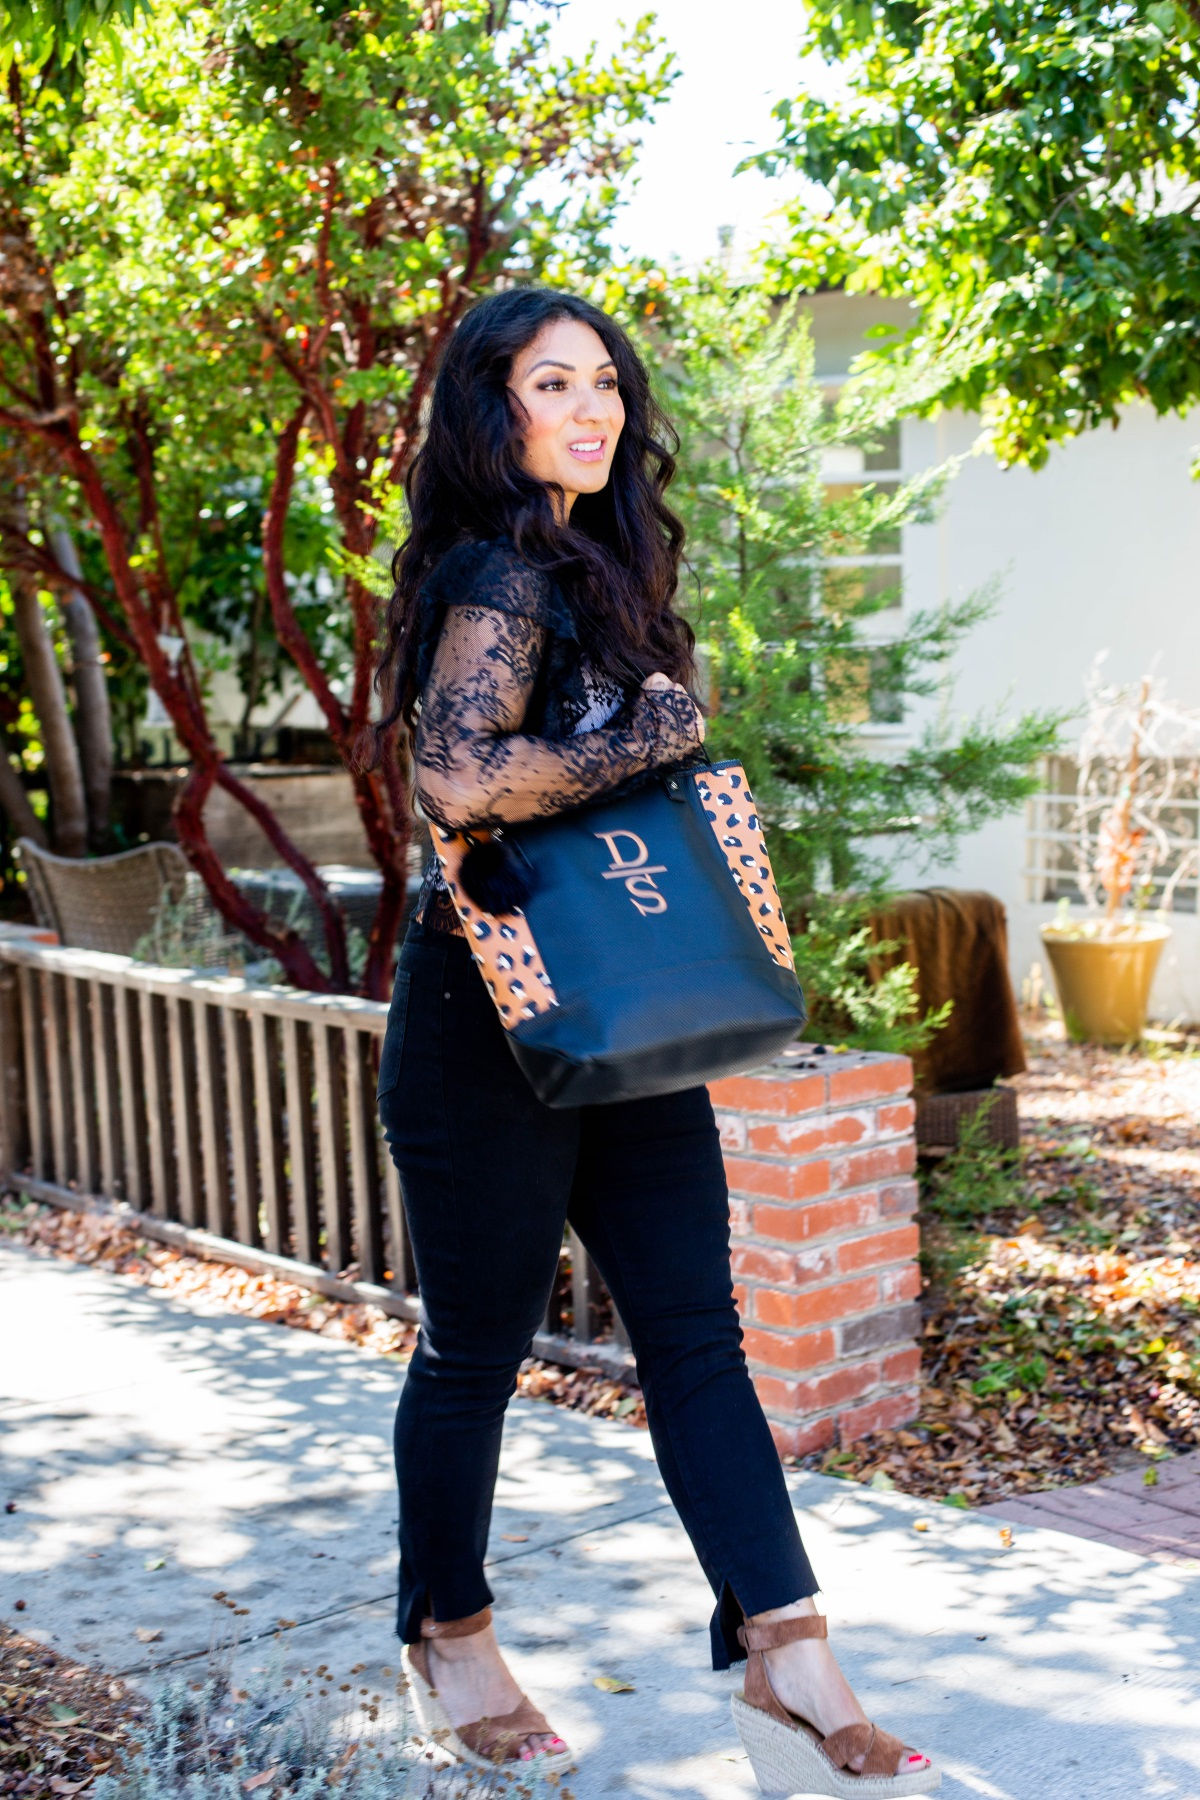 2 Items You Need to be Organized In Style | Thirty-One Gifts Personalized Tote & Wallet | Debbie Savage Orange County Fashion Blogger at To Thine Own Style Be True